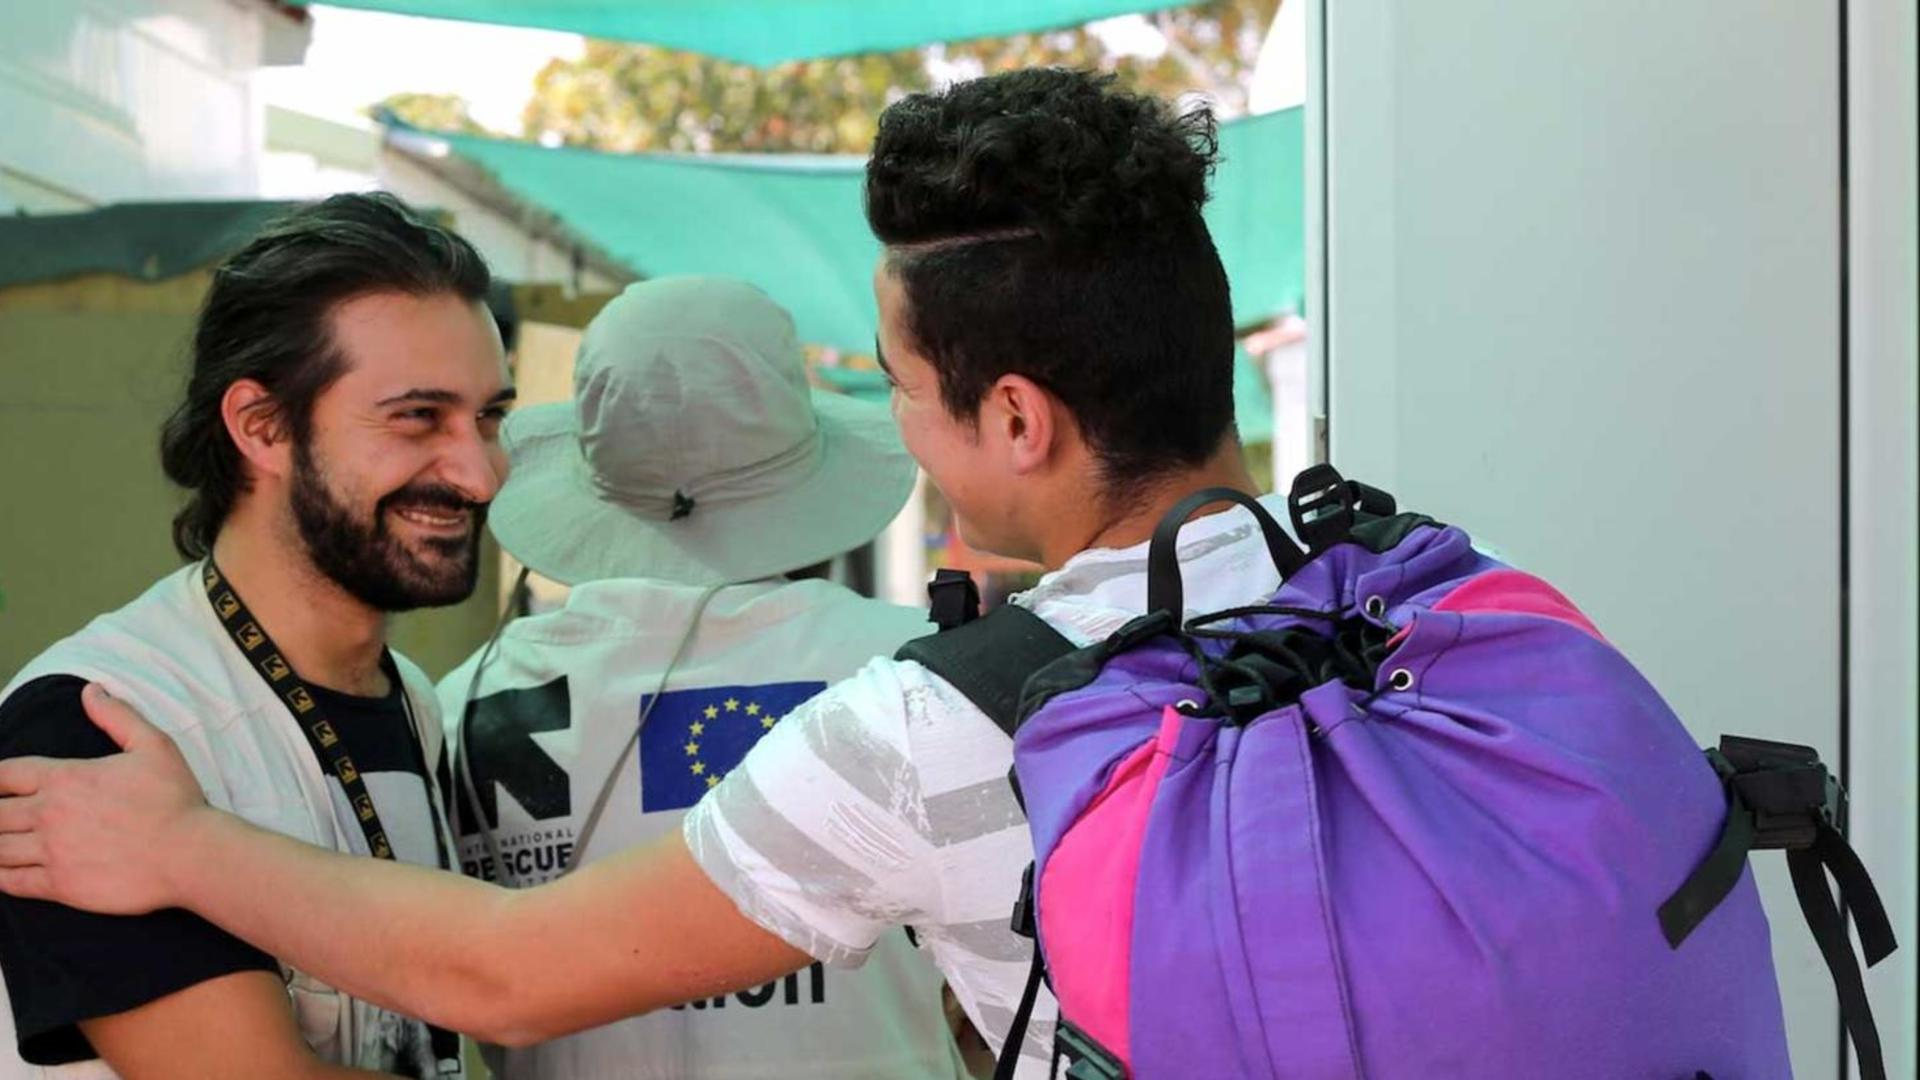 A young refugee in Greece says goodbye to an IRC aid worker as he leaves the camp to be reunited with relatives.